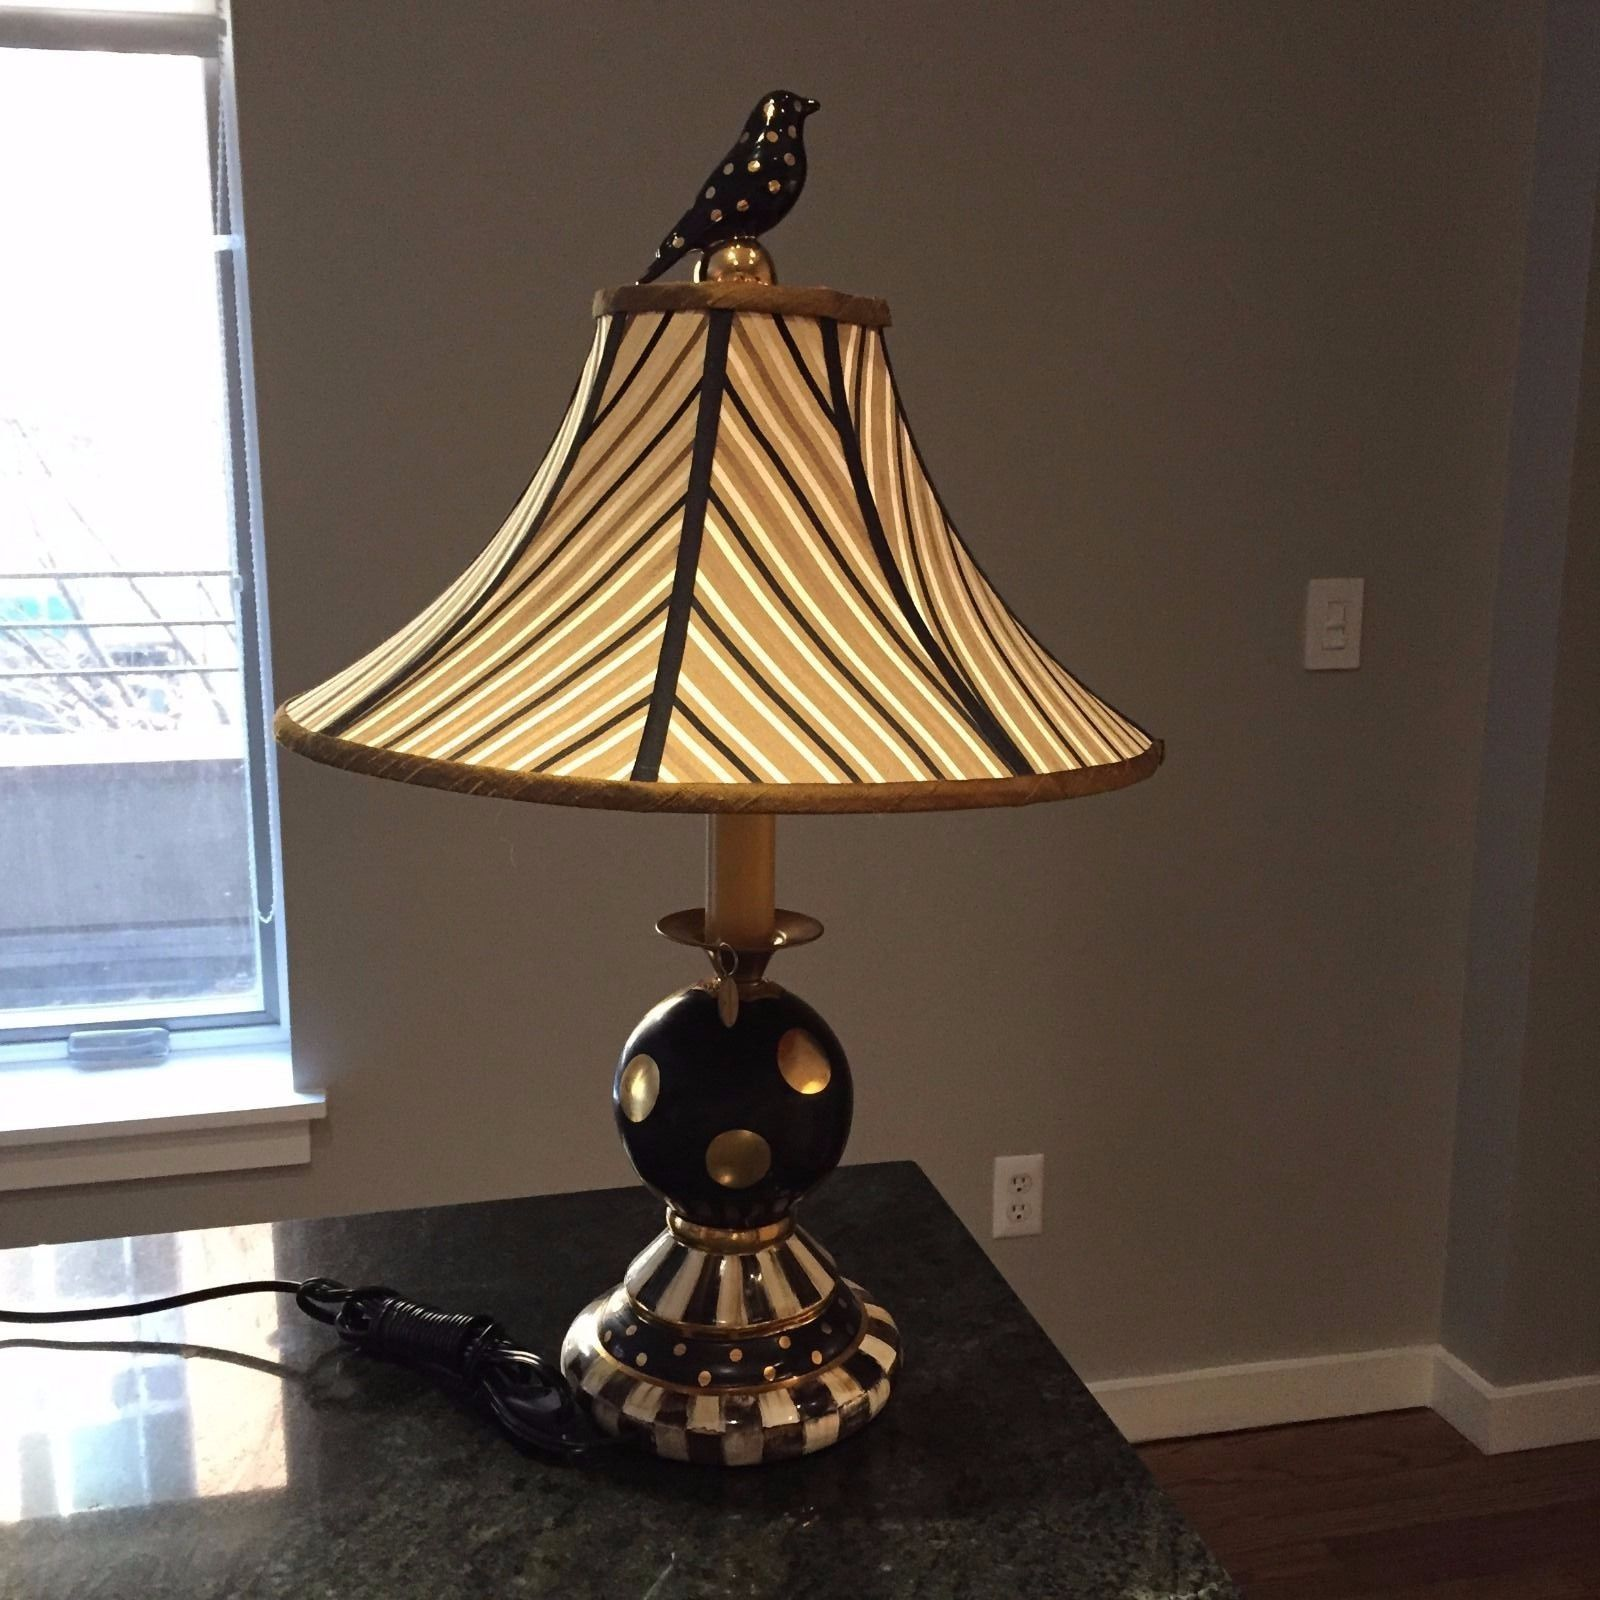 Pin by rce love on mackenzie childs furniture lamps chandeliers mackenzie childs furniture lamp light table lamp chandeliers lamps lightbulbs chandelier lighting chandelier light fixtures arubaitofo Image collections